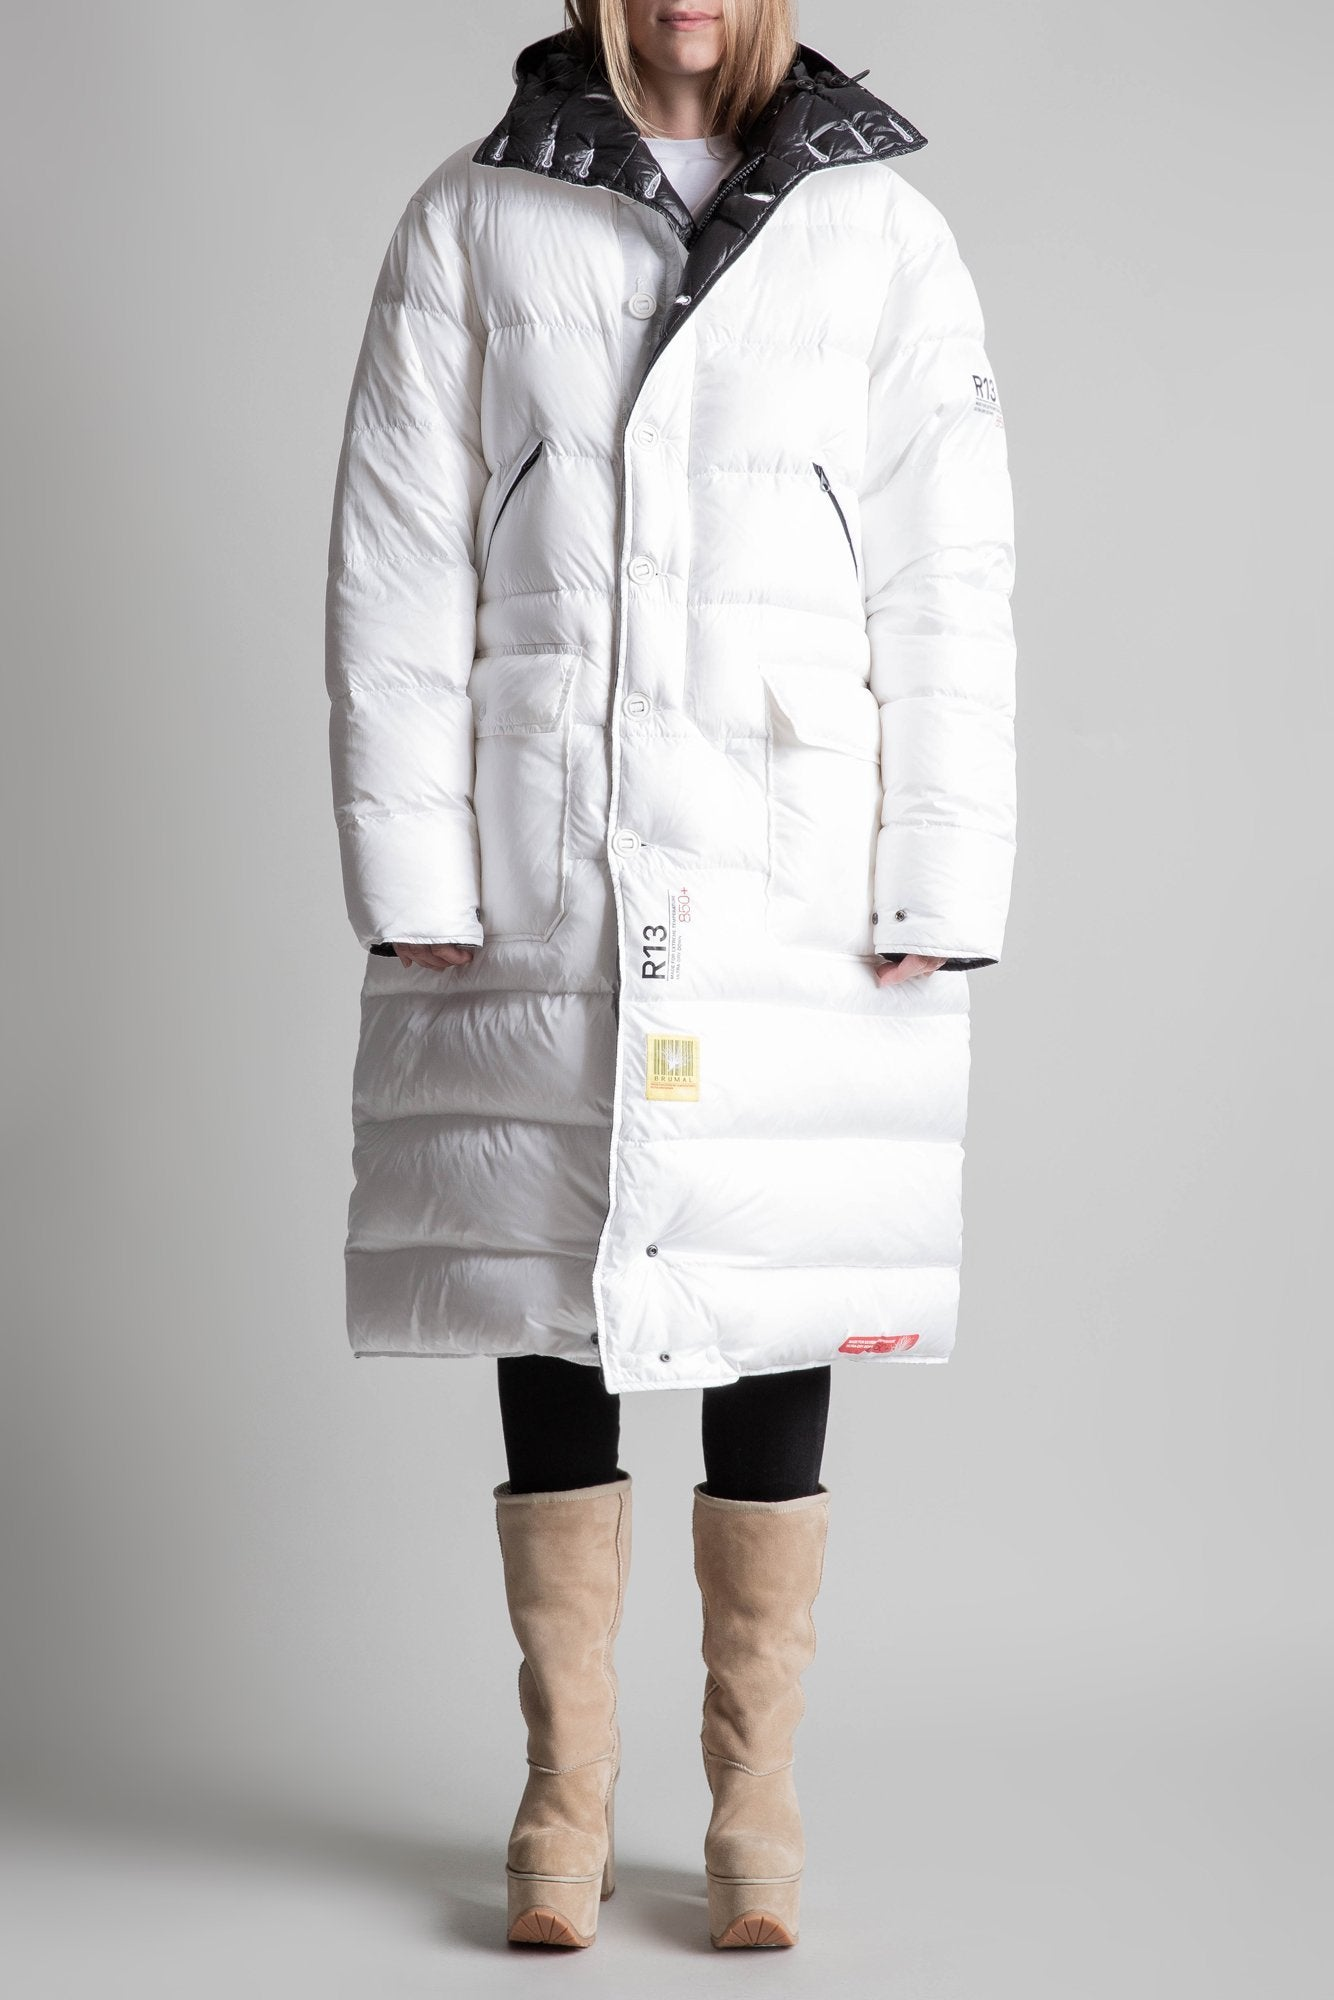 Long Anorak Puffer Jacket - White and Black